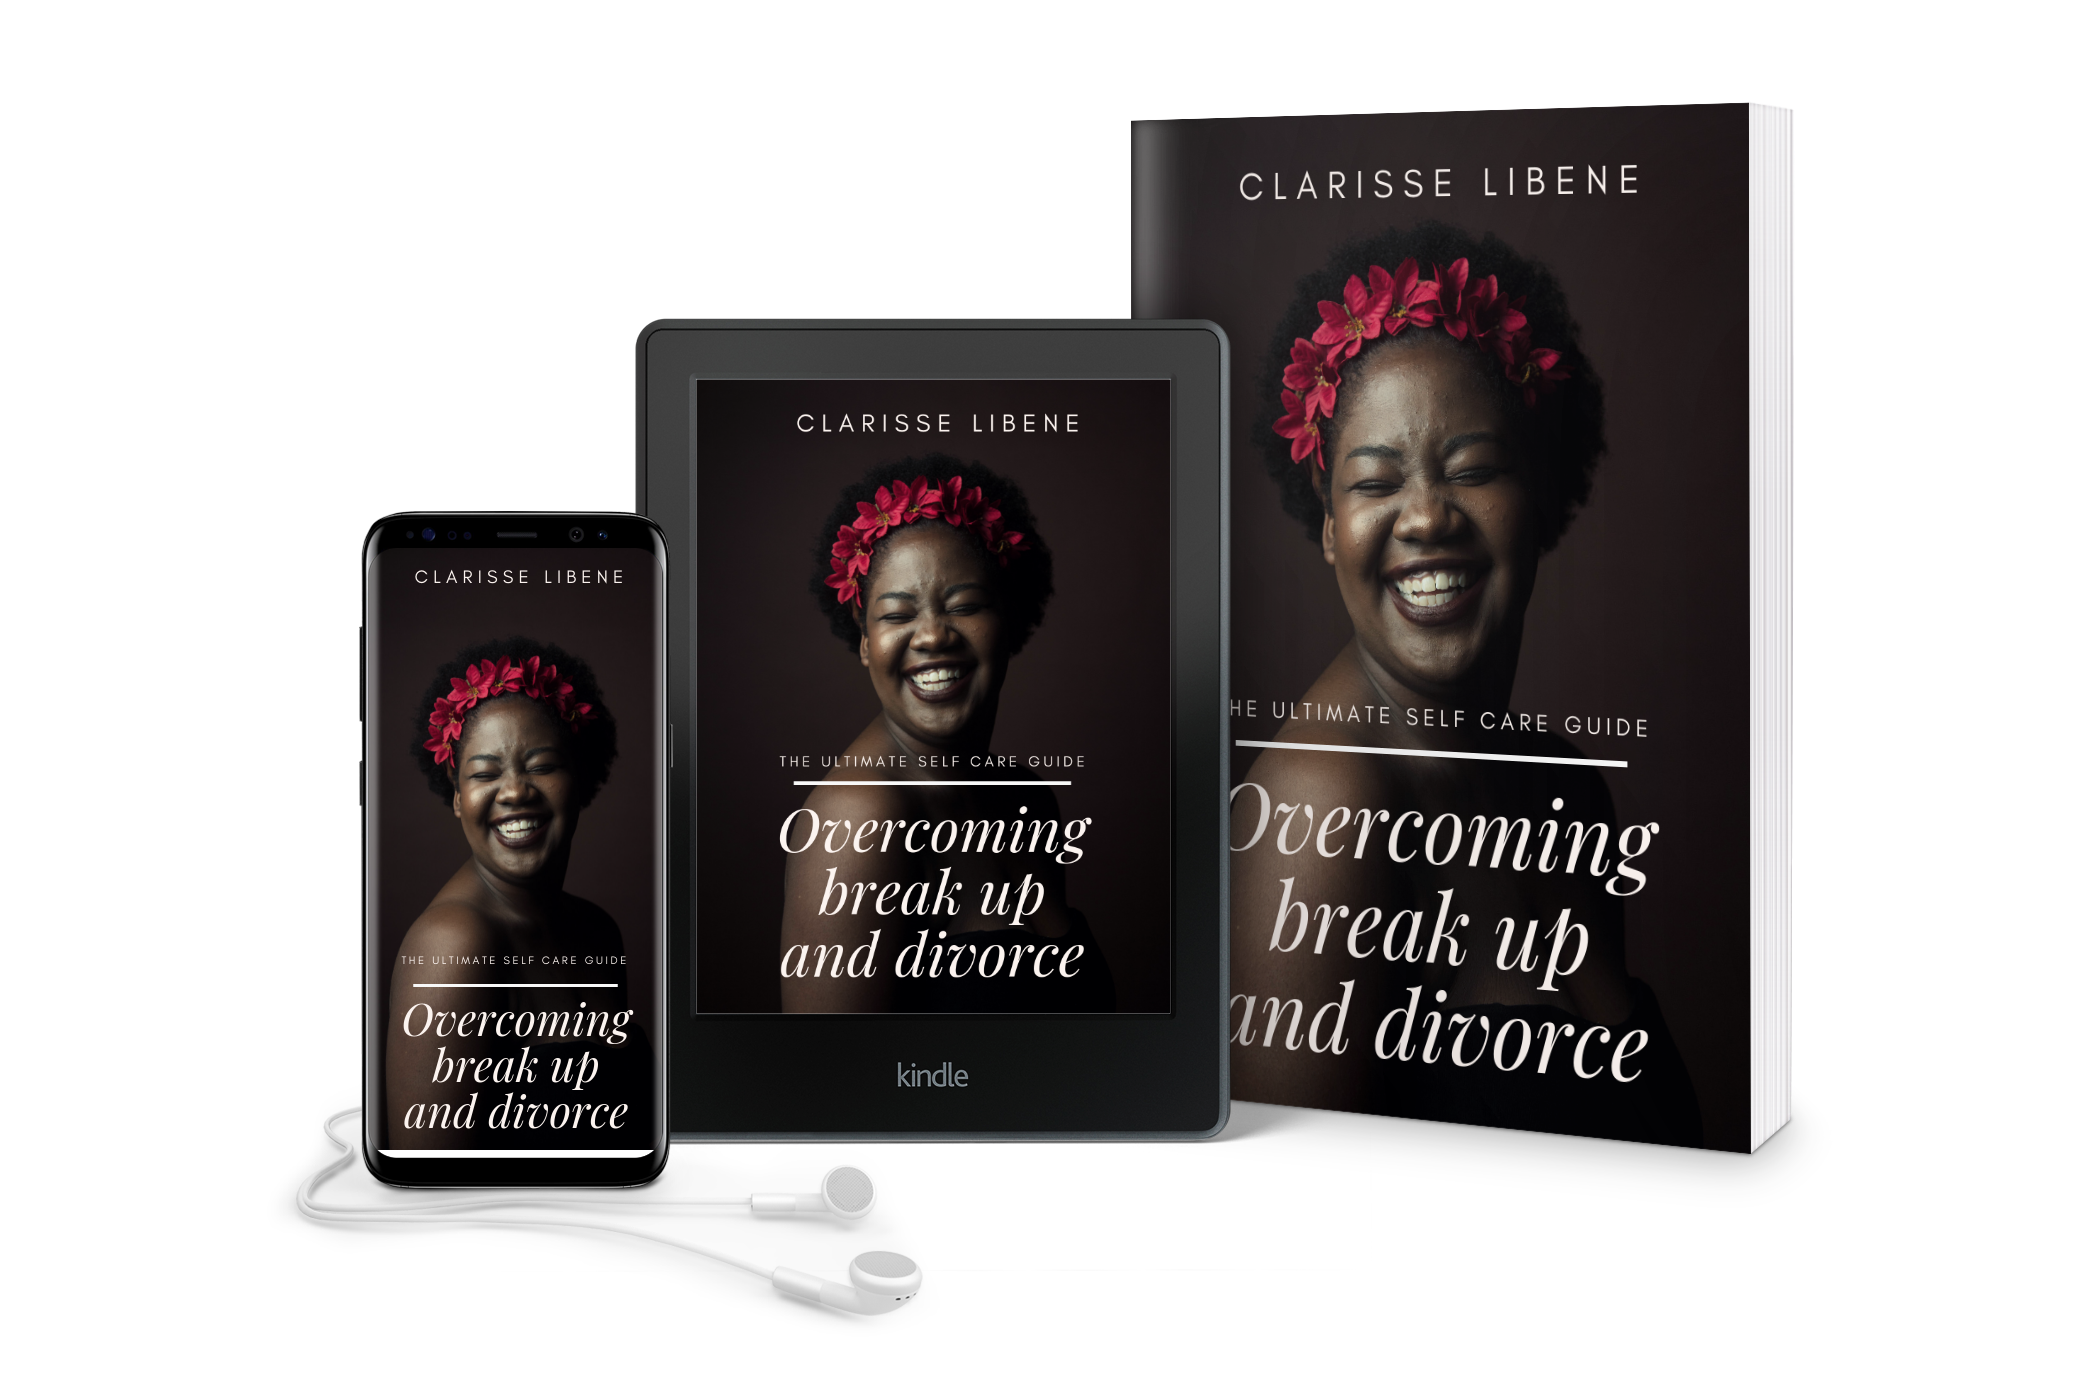 Overcoming break up and divorce - This is an extract of my new bookDelivered on january 2019